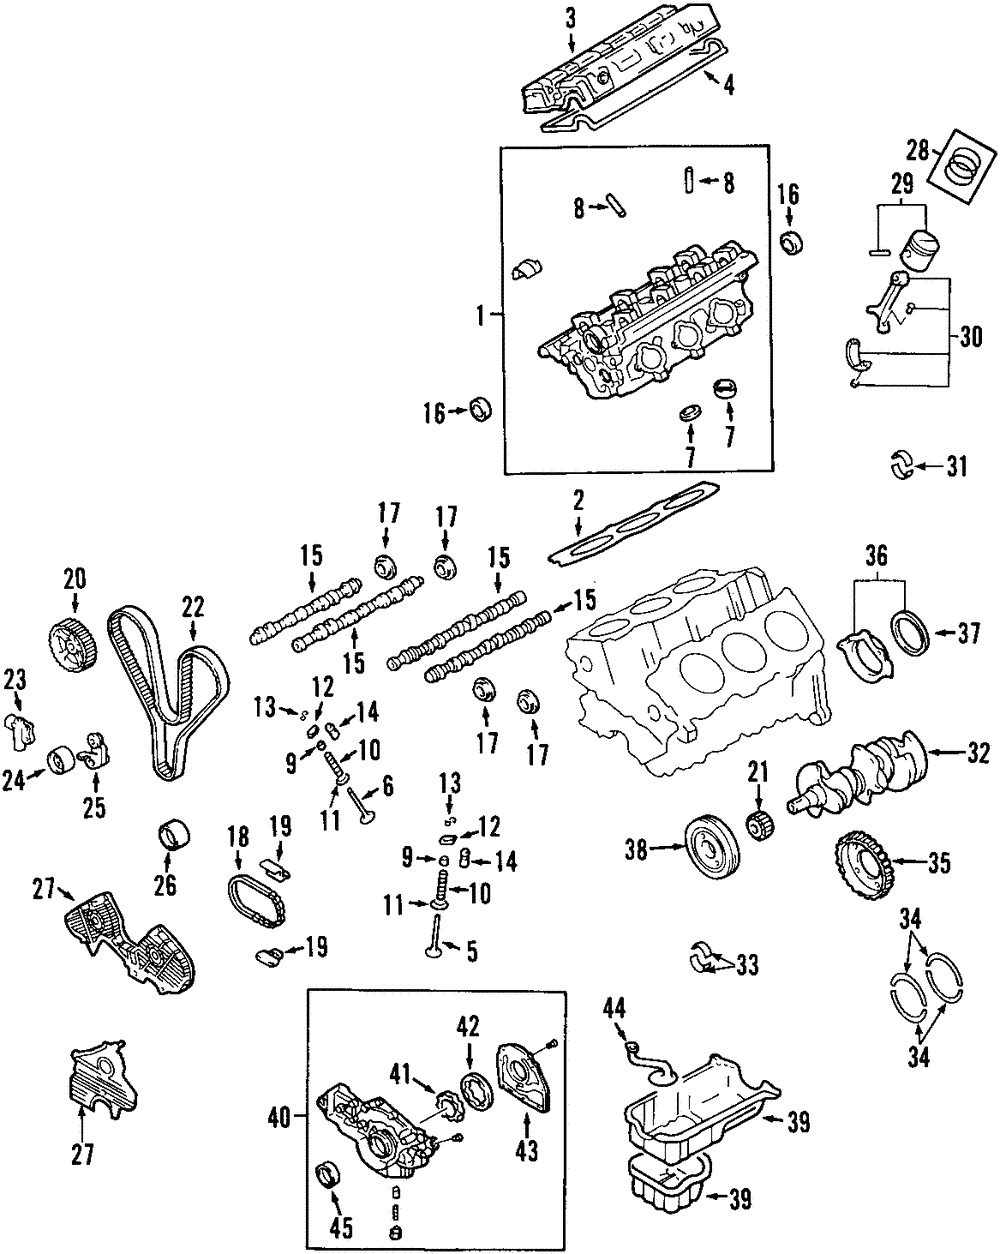 1996 Cadillac Deville Brake Line Diagram Together With 2001 Kia